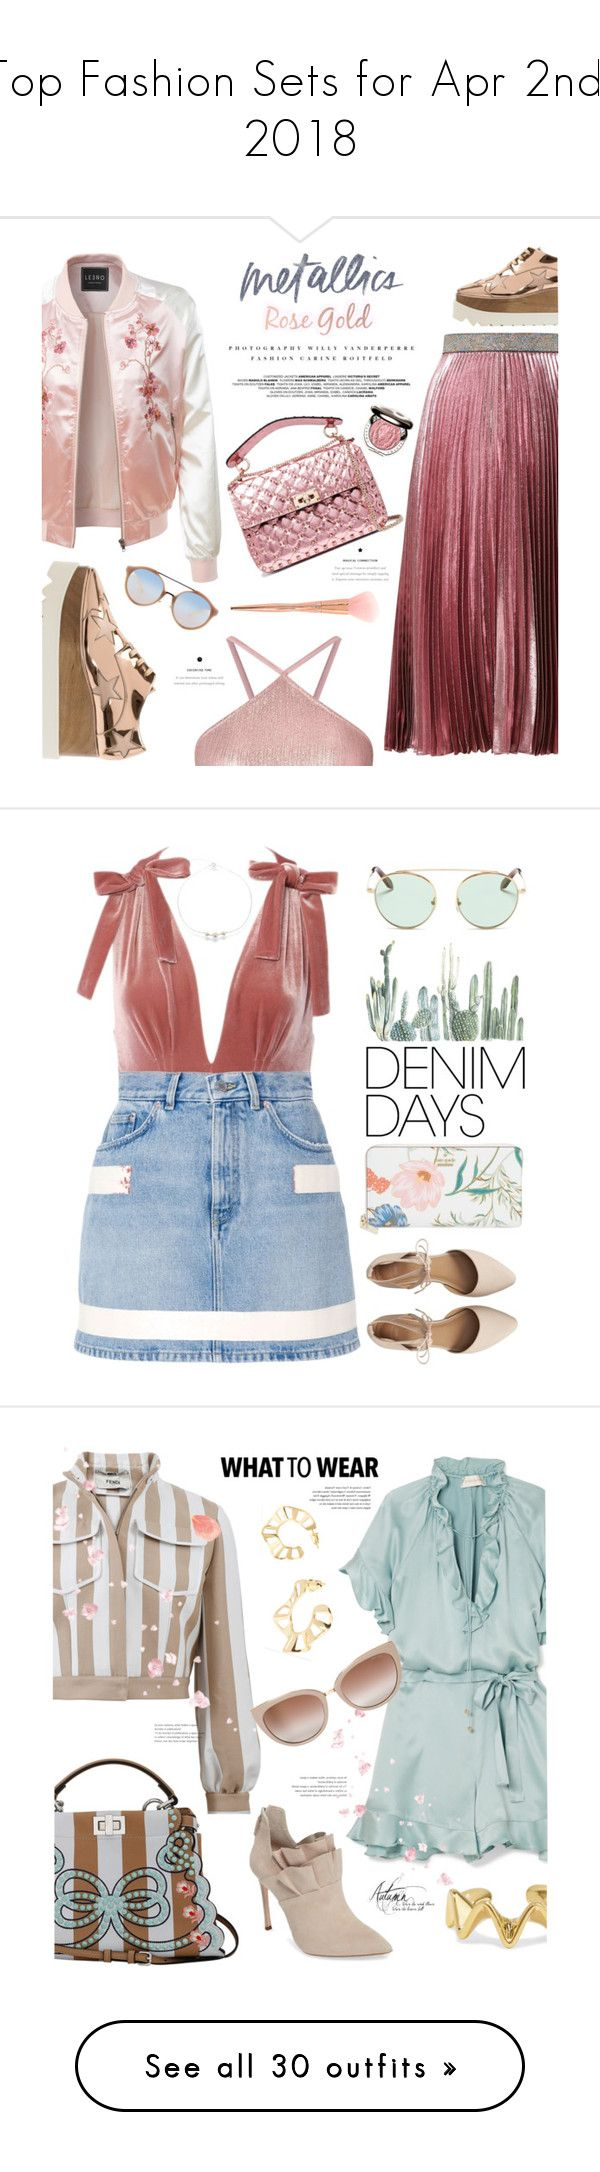 """Top Fashion Sets for Apr 2nd, 2018"" by polyvore ❤ liked on Polyvore featuring LE3NO, Christopher Kane, STELLA McCARTNEY, Miss Selfridge, Kerr®, Valentino, Forever 21, Chantecaille, Tory Burch and metallic"